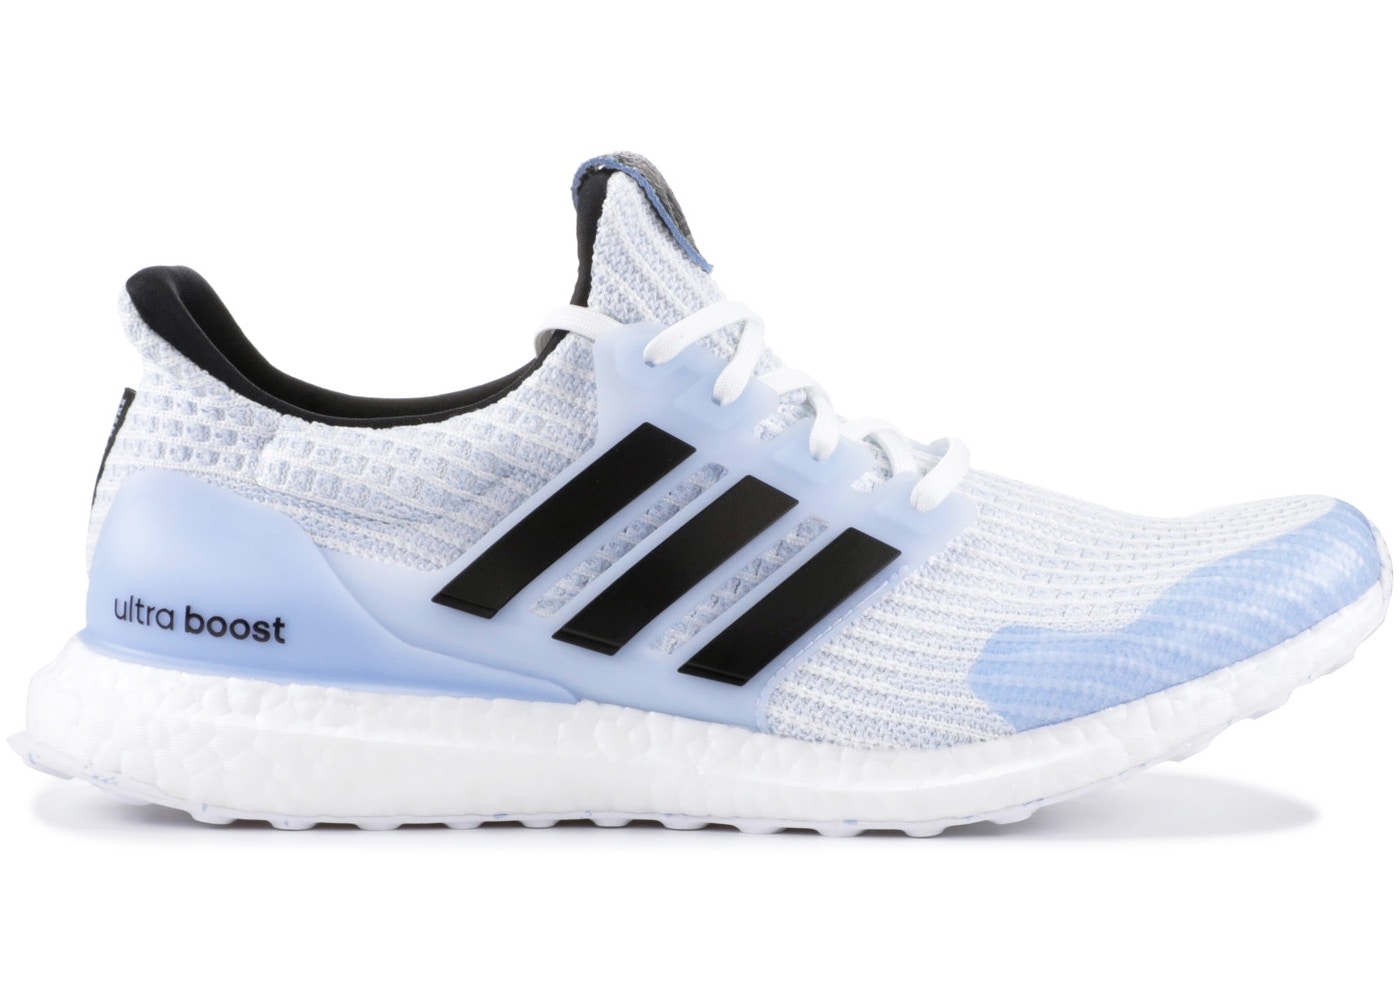 check out ade0a 2a3e4 adidas Ultra Boost 4.0 Game of Thrones White Walkers - EE3708